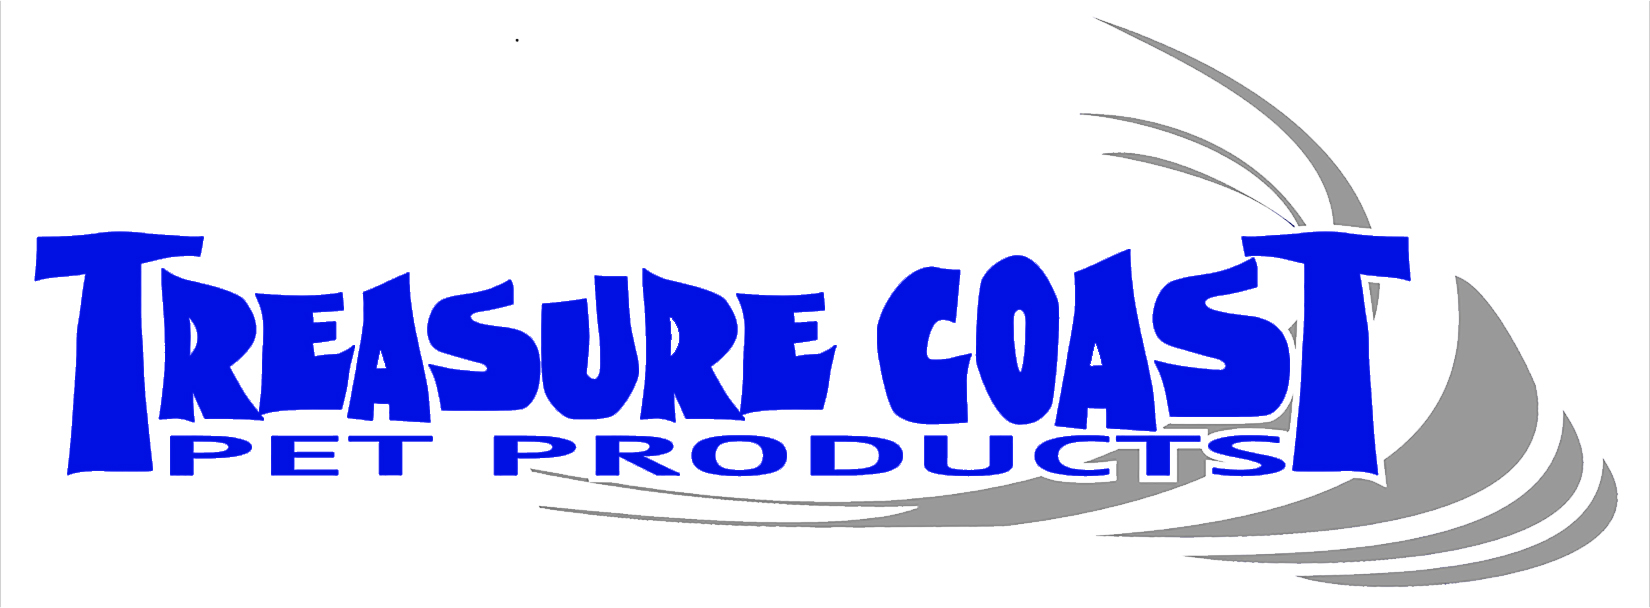 treasure coast logo blue